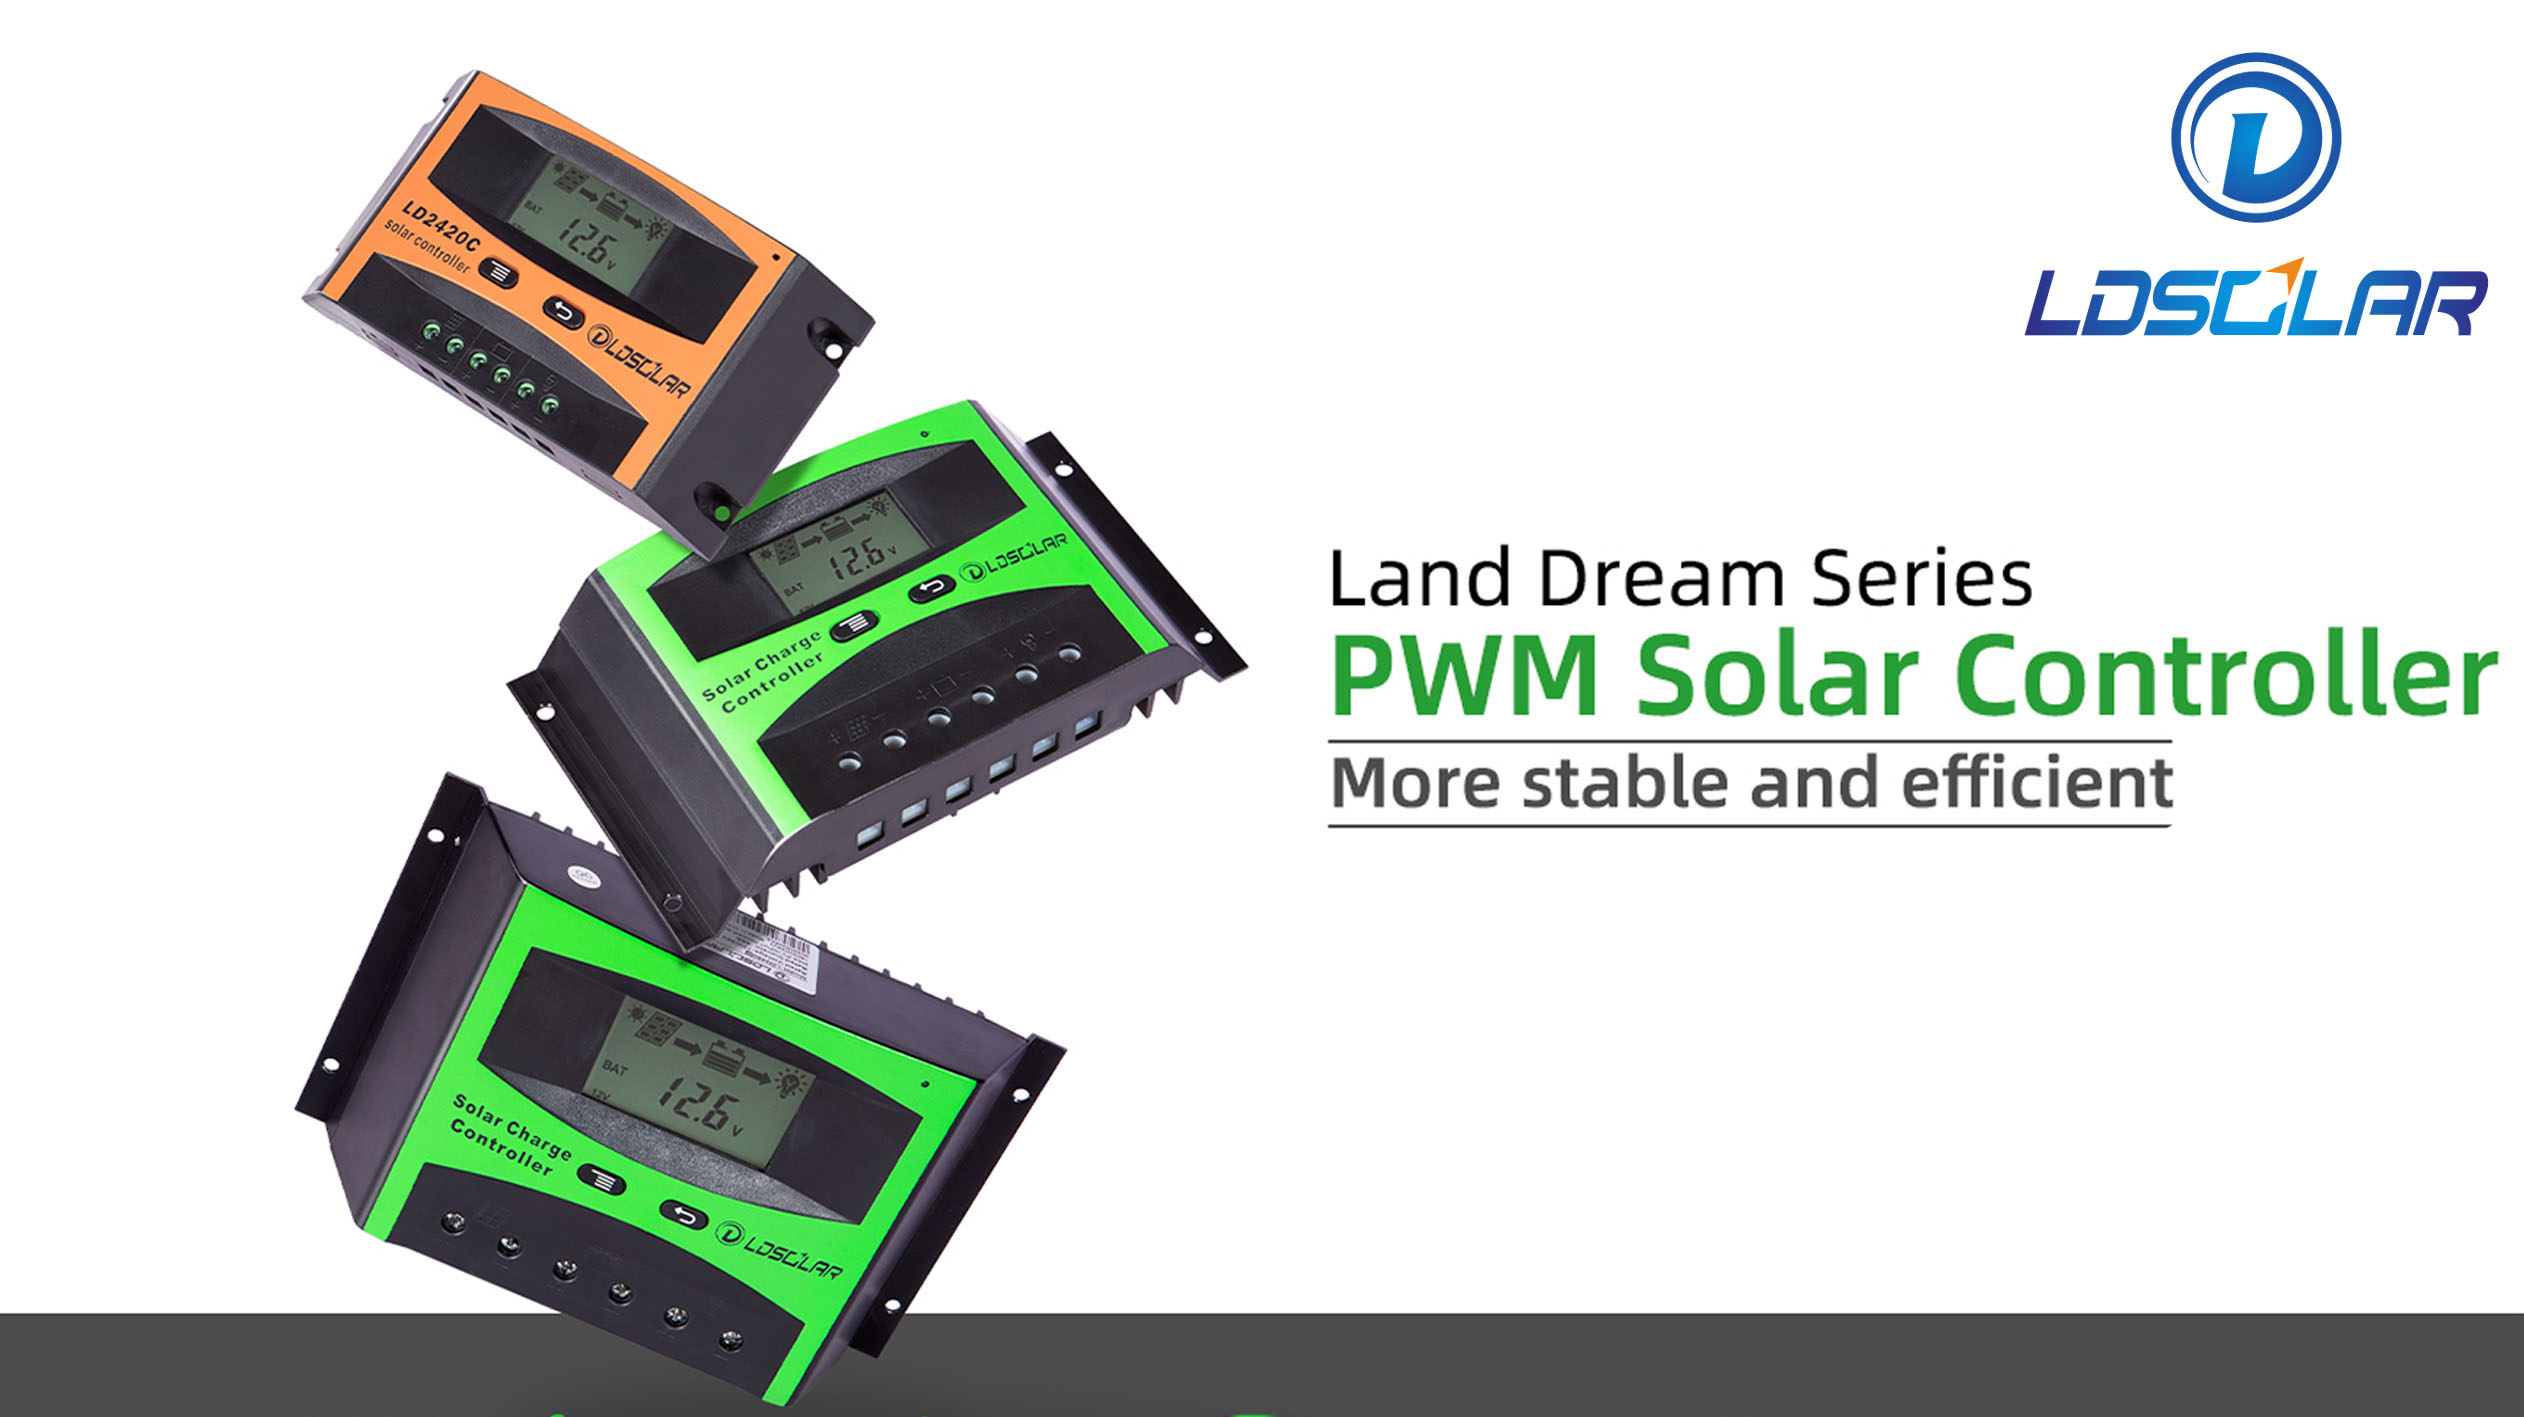 ldsolar 2021 Best Land Dream Series PWM Solar Charge Controller